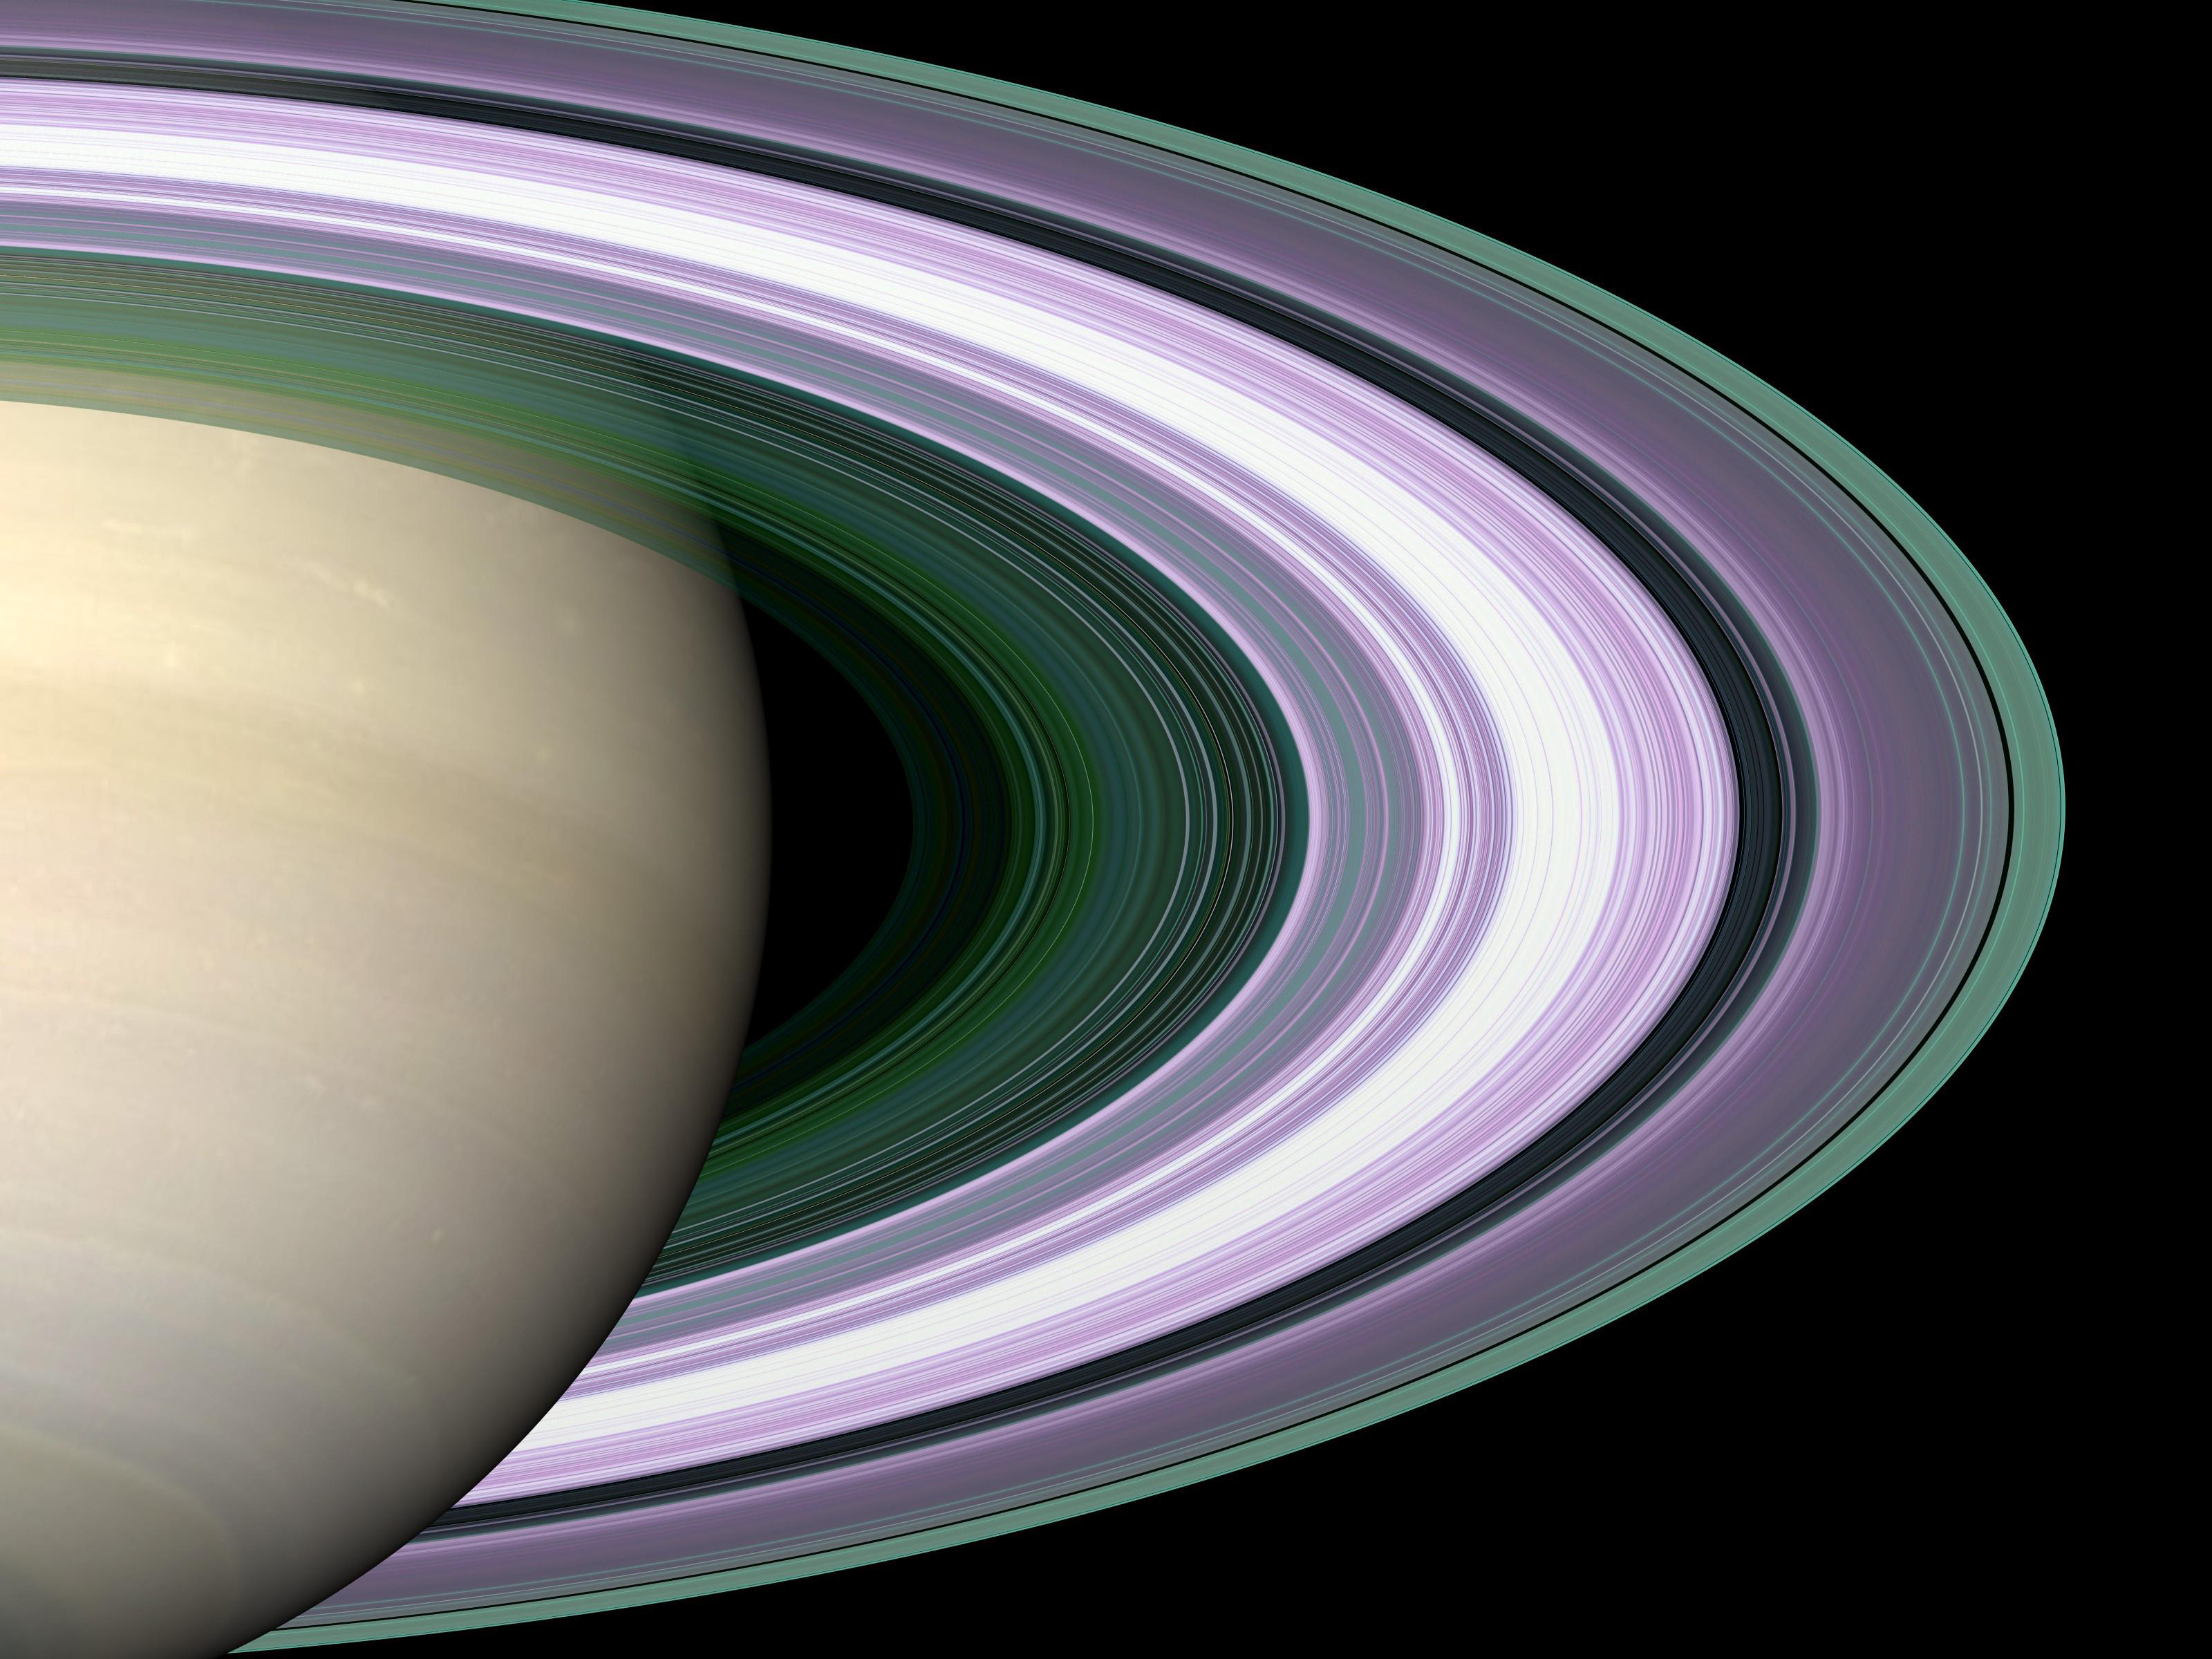 saturn_occultation.jpg